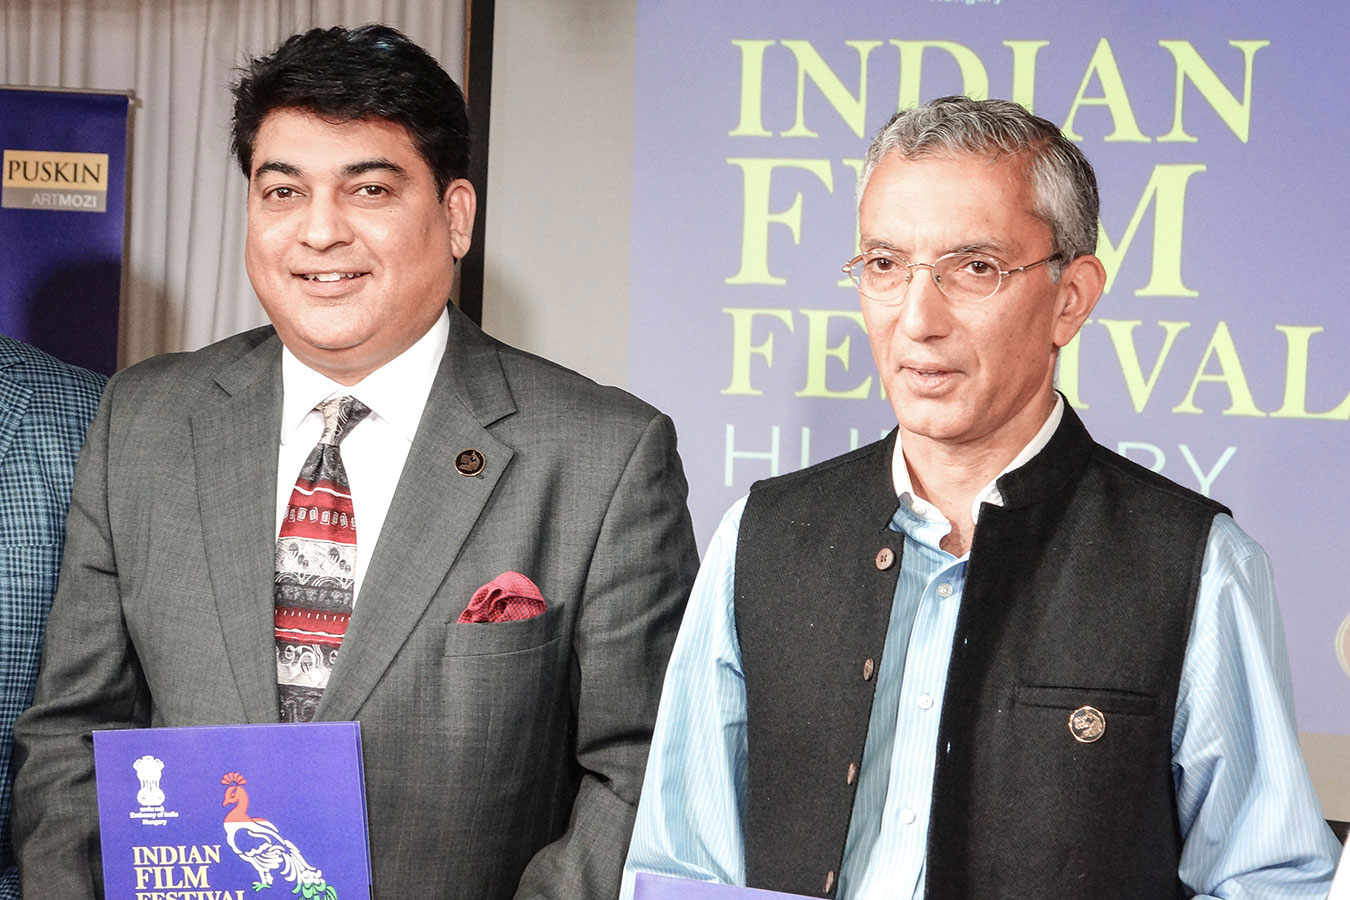 ind-indian-film-festival-2018-press-conference-ambassador-rahul-chhabra-captain-rahul-bali.jpg